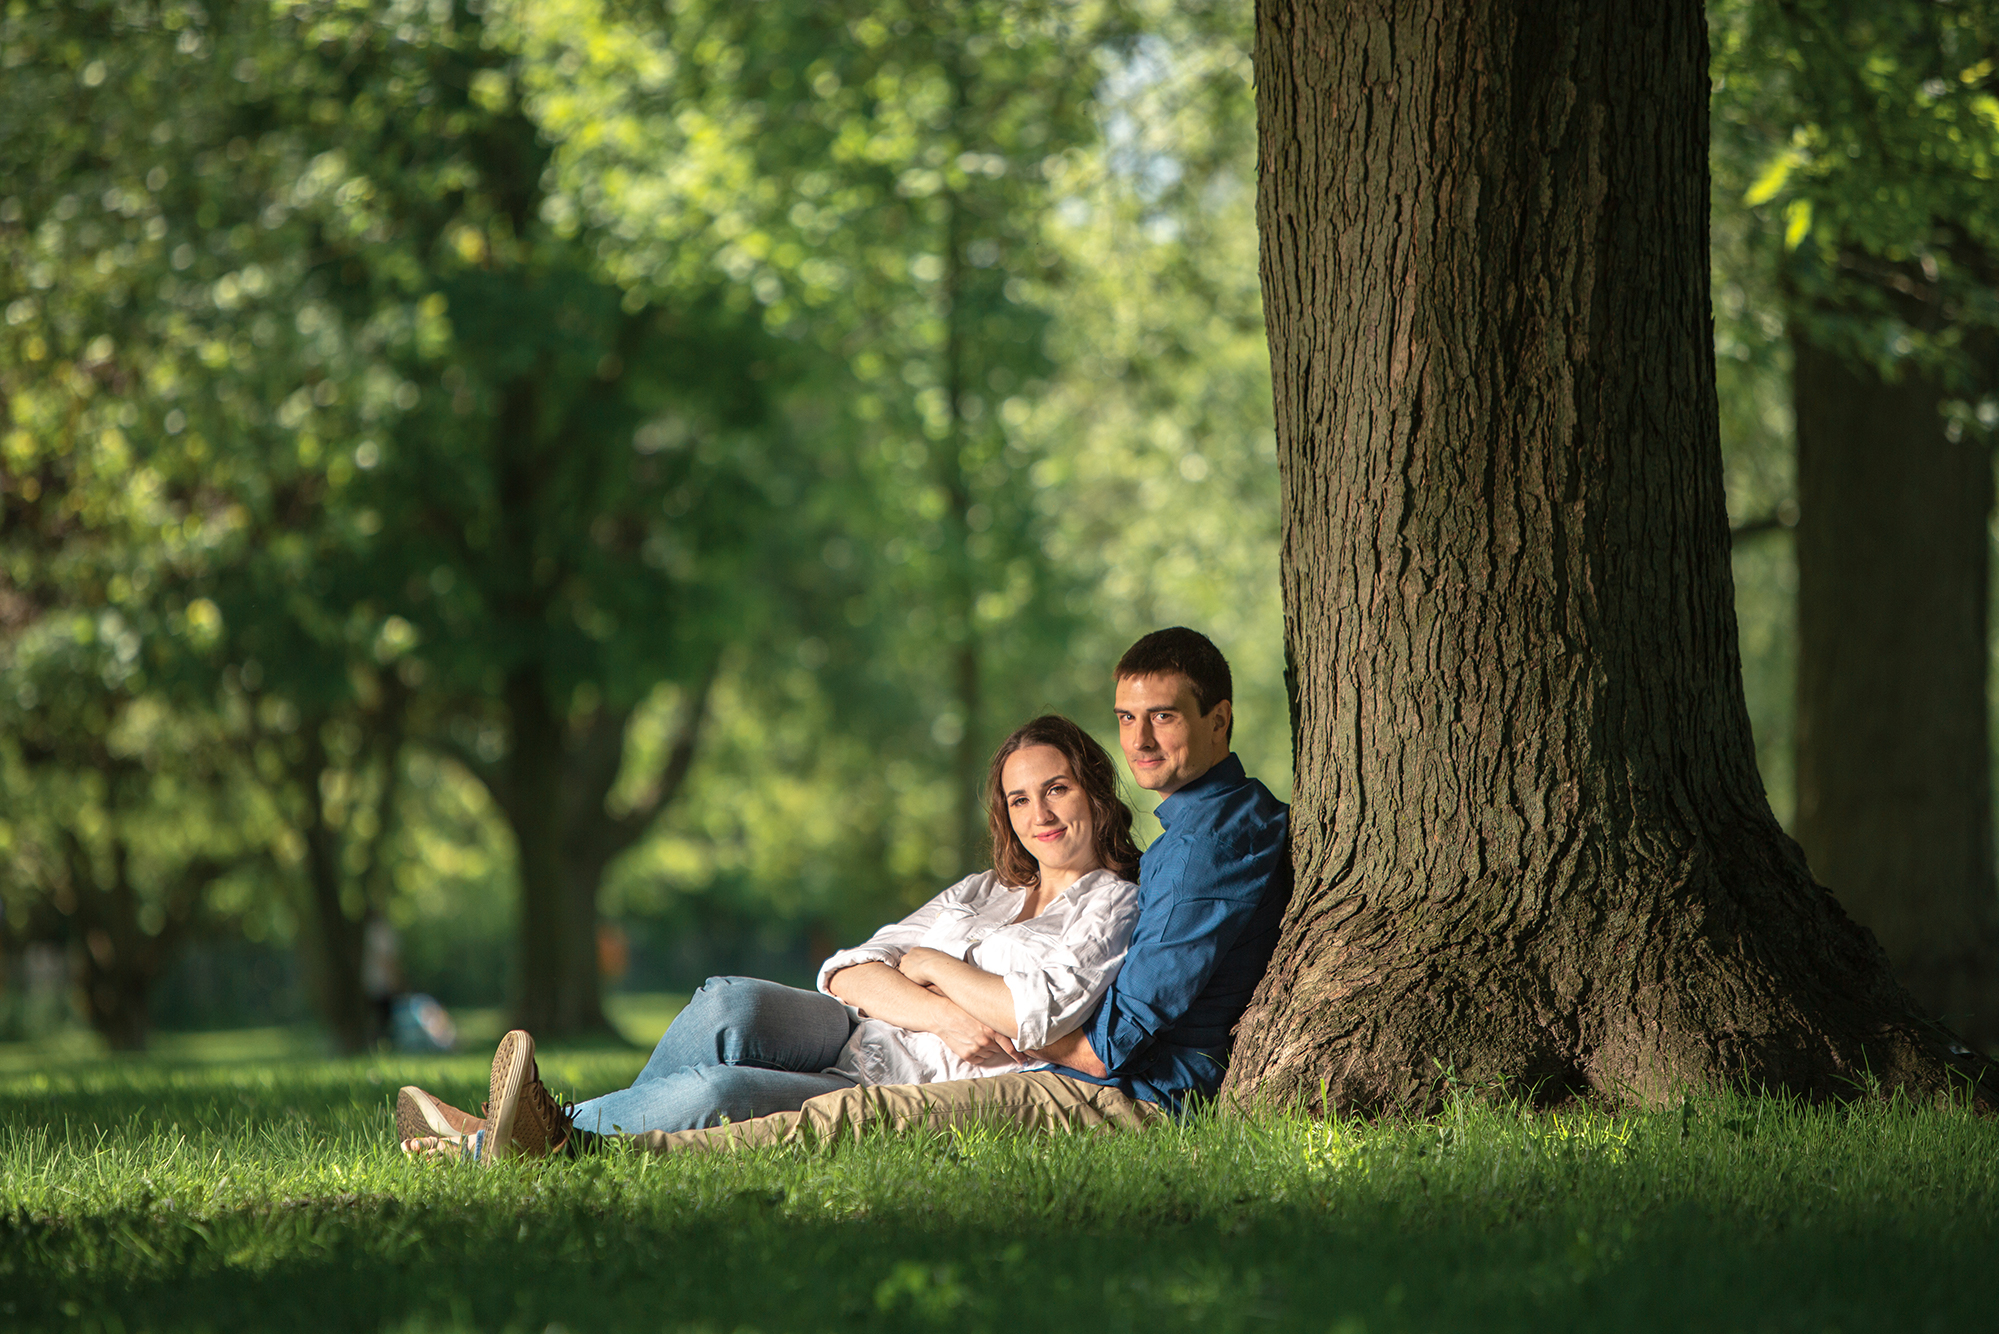 This image shows how we shoot engagement photos in a Toronto park